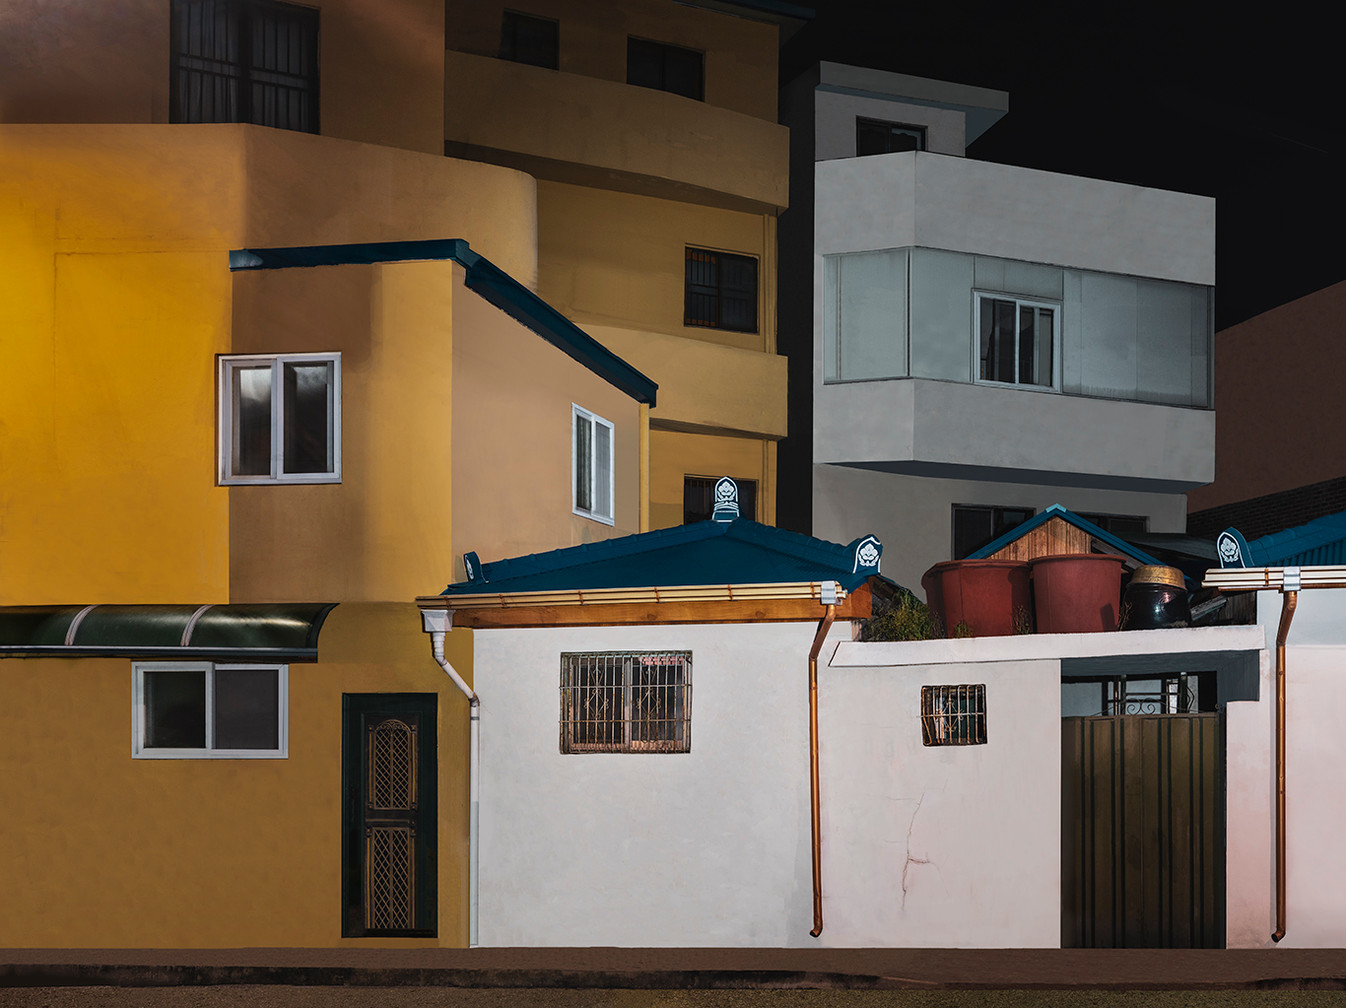 The Houses at Night #22